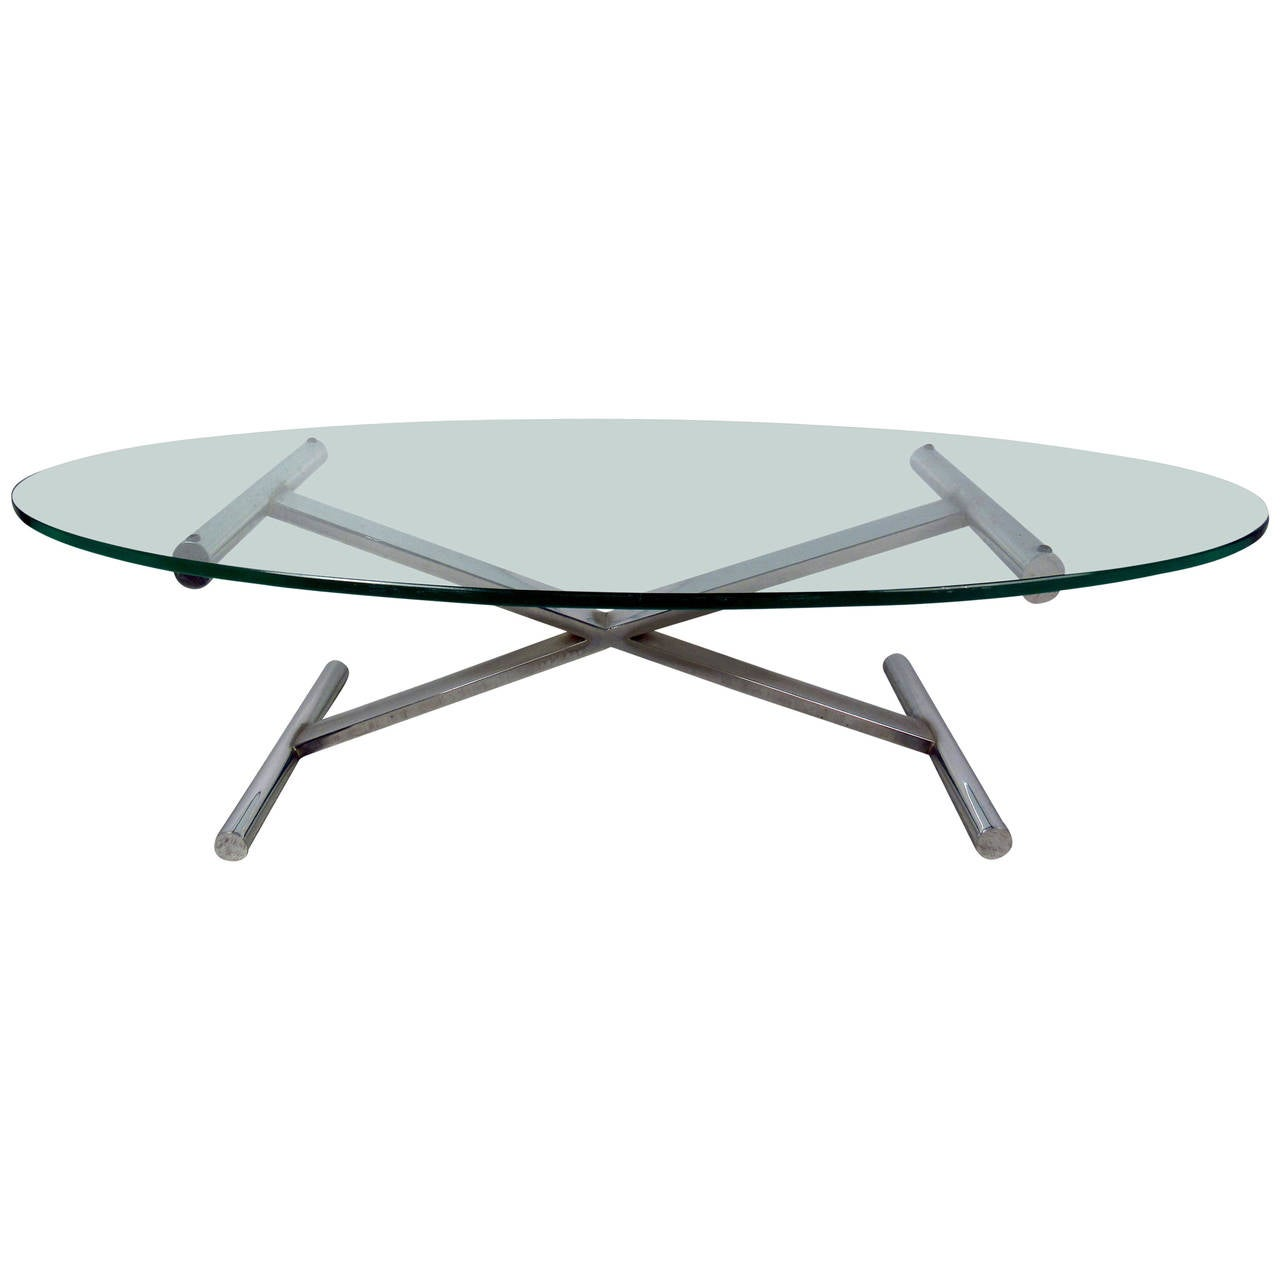 Oval shaped glass top coffee table with chrome base for sale at 1stdibs Glass coffee table base